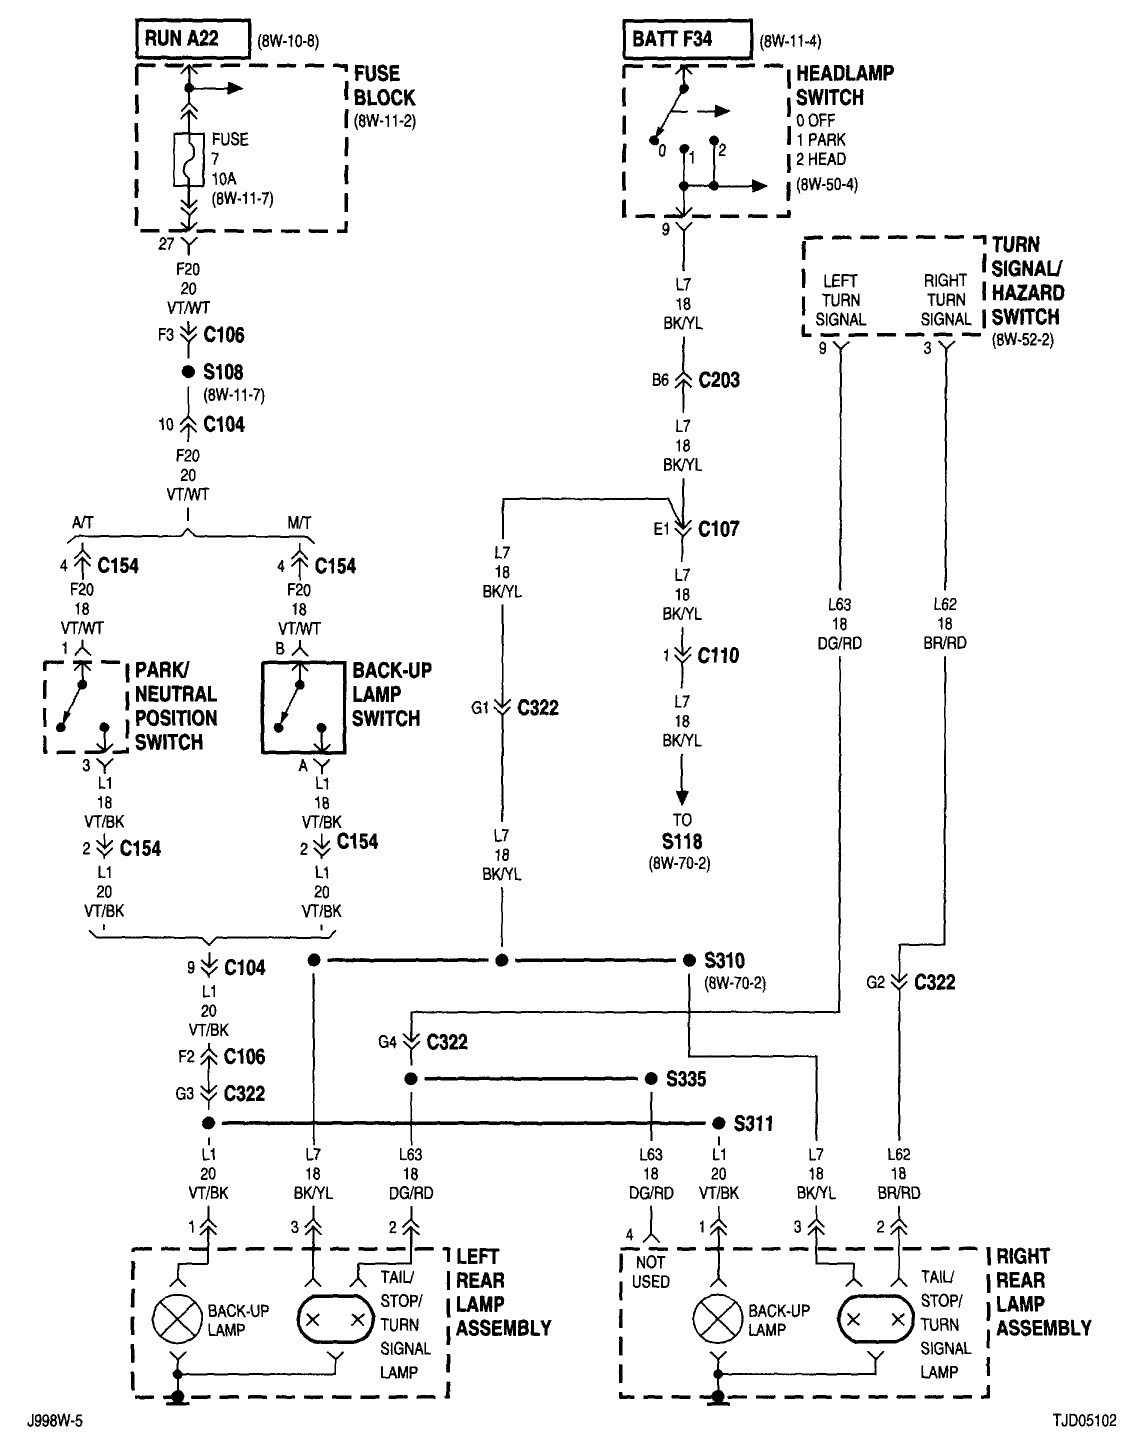 fsj jeep wiring diagram wiring diagram database 2001 Jeep Cherokee Speaker Wiring Diagram 78 j10 wiring diagram database 1996 jeep cherokee wiring diagram 1985 jeep cherokee wiring diagram wiring